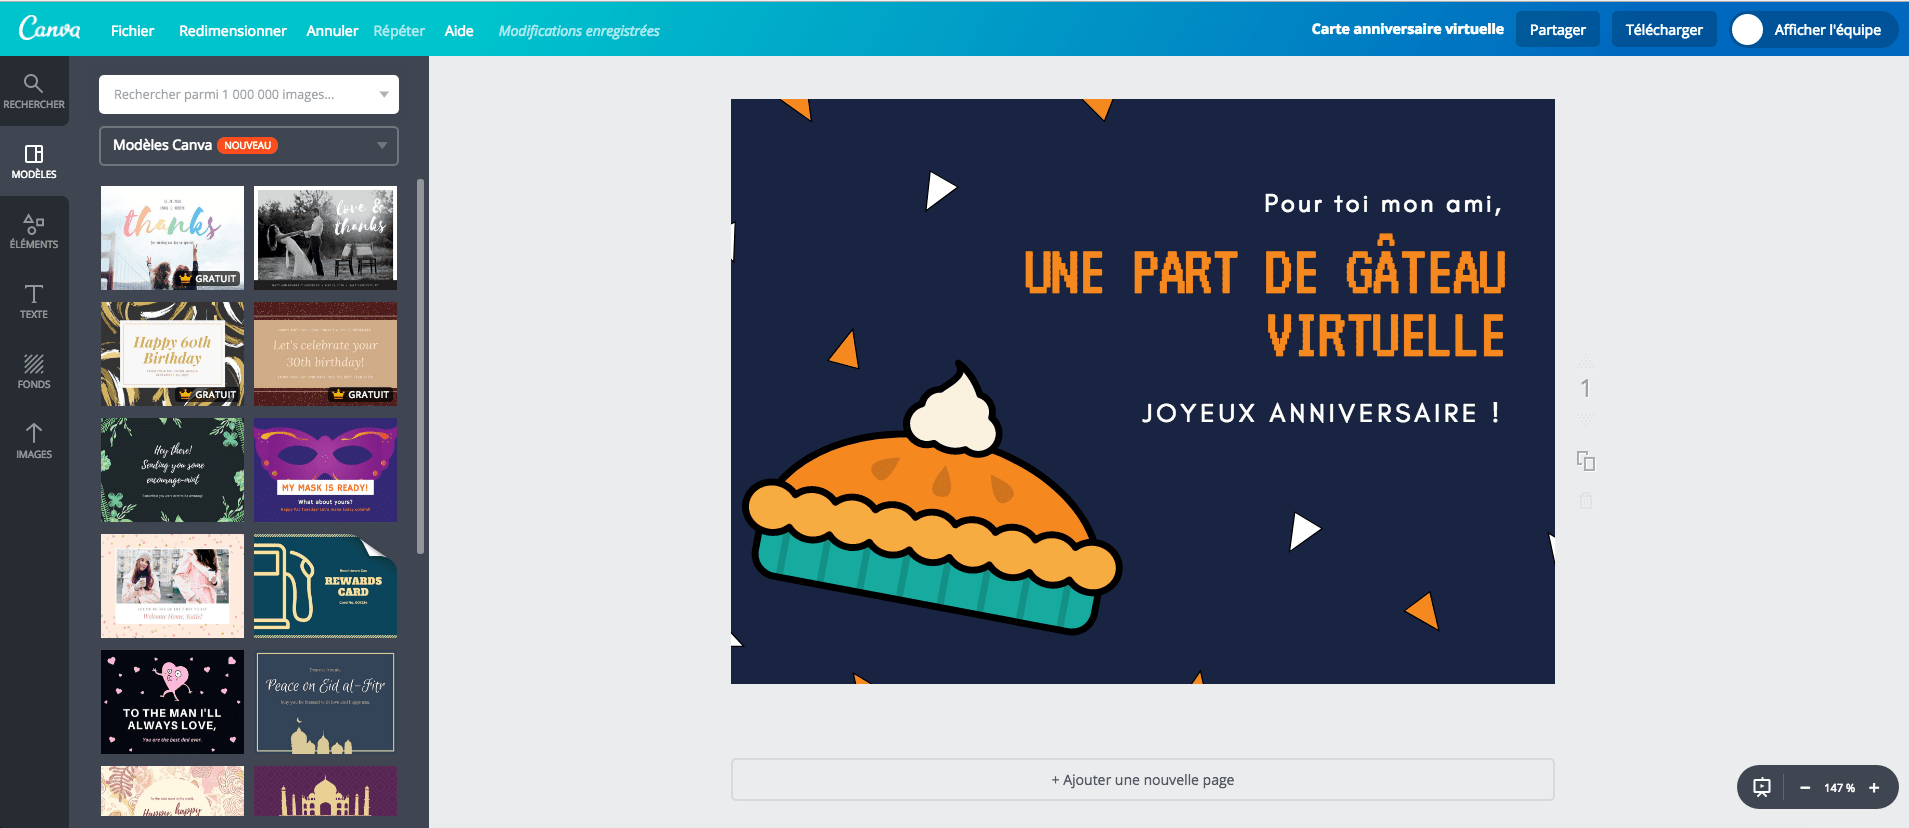 Carte d'anniversaire virtuelle